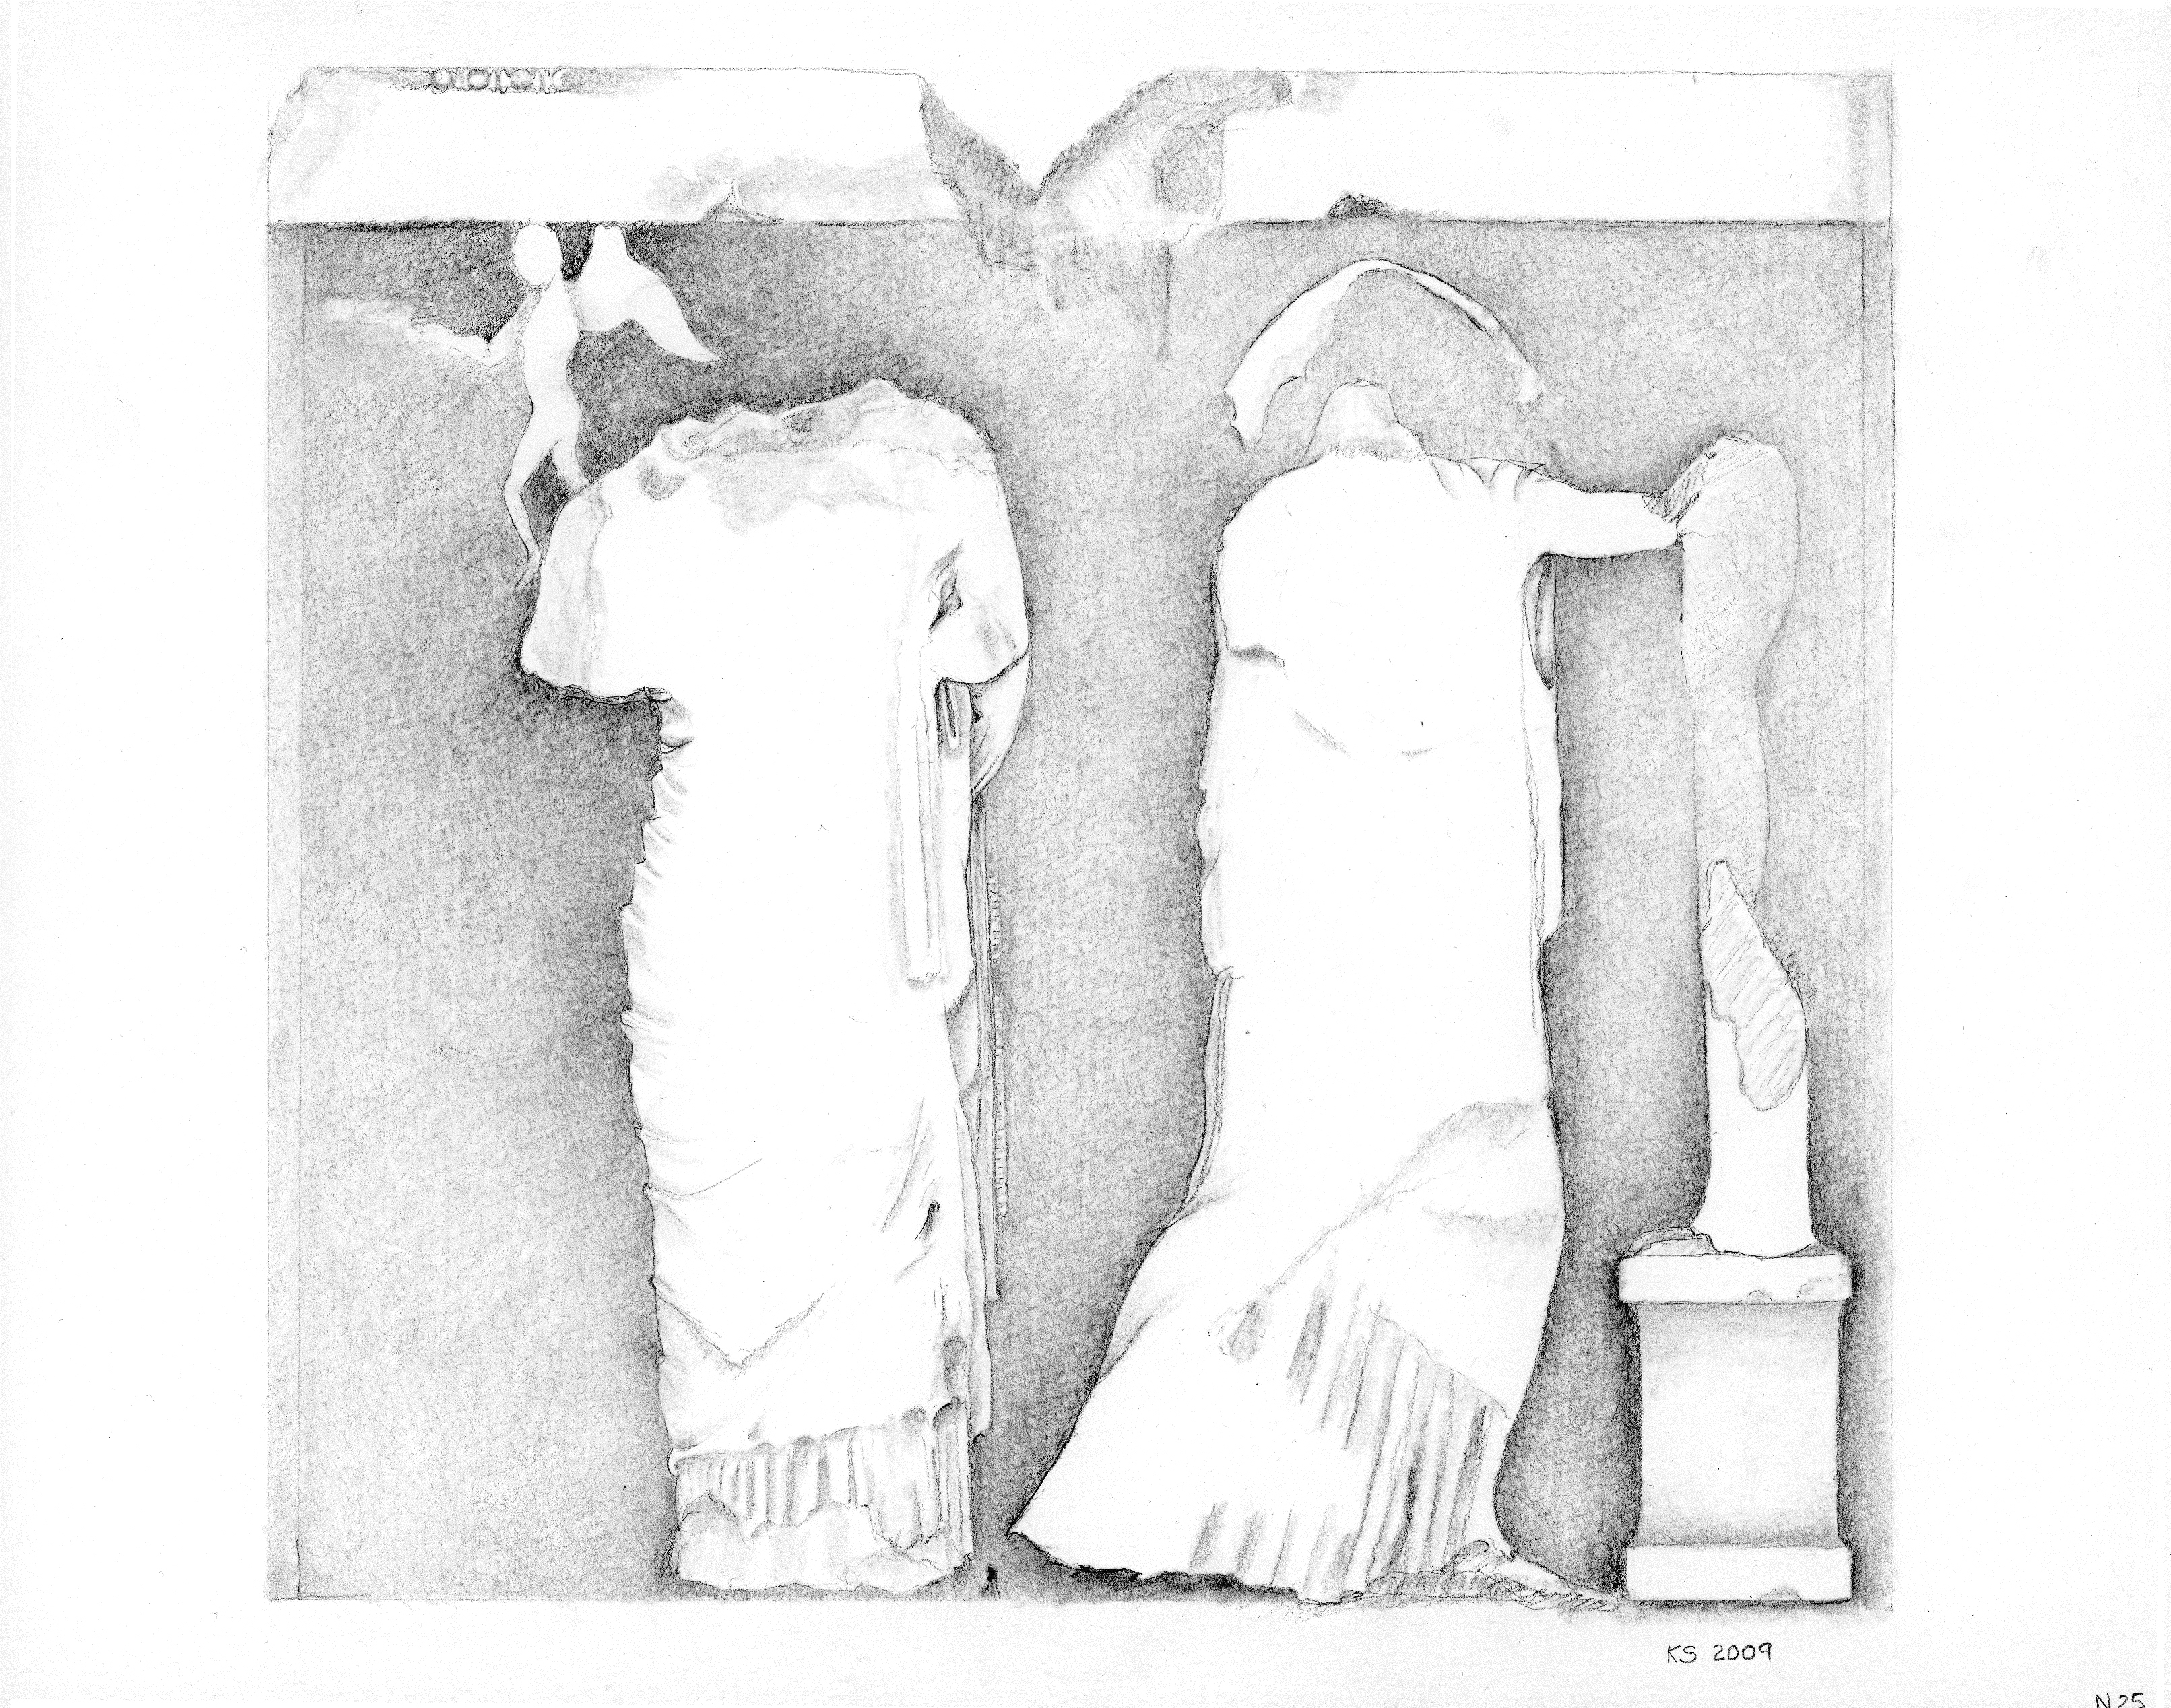 Katherine A. Schwab Parthenon North Metope 25: Eros and Aphrodite protect Helen as she runs to a statue of Athena, 2009 Graphite on paper 8 3/4 x 10 15/16 inches (sheet) On loan from the Bellarmine Museum of Art, Fairfield University